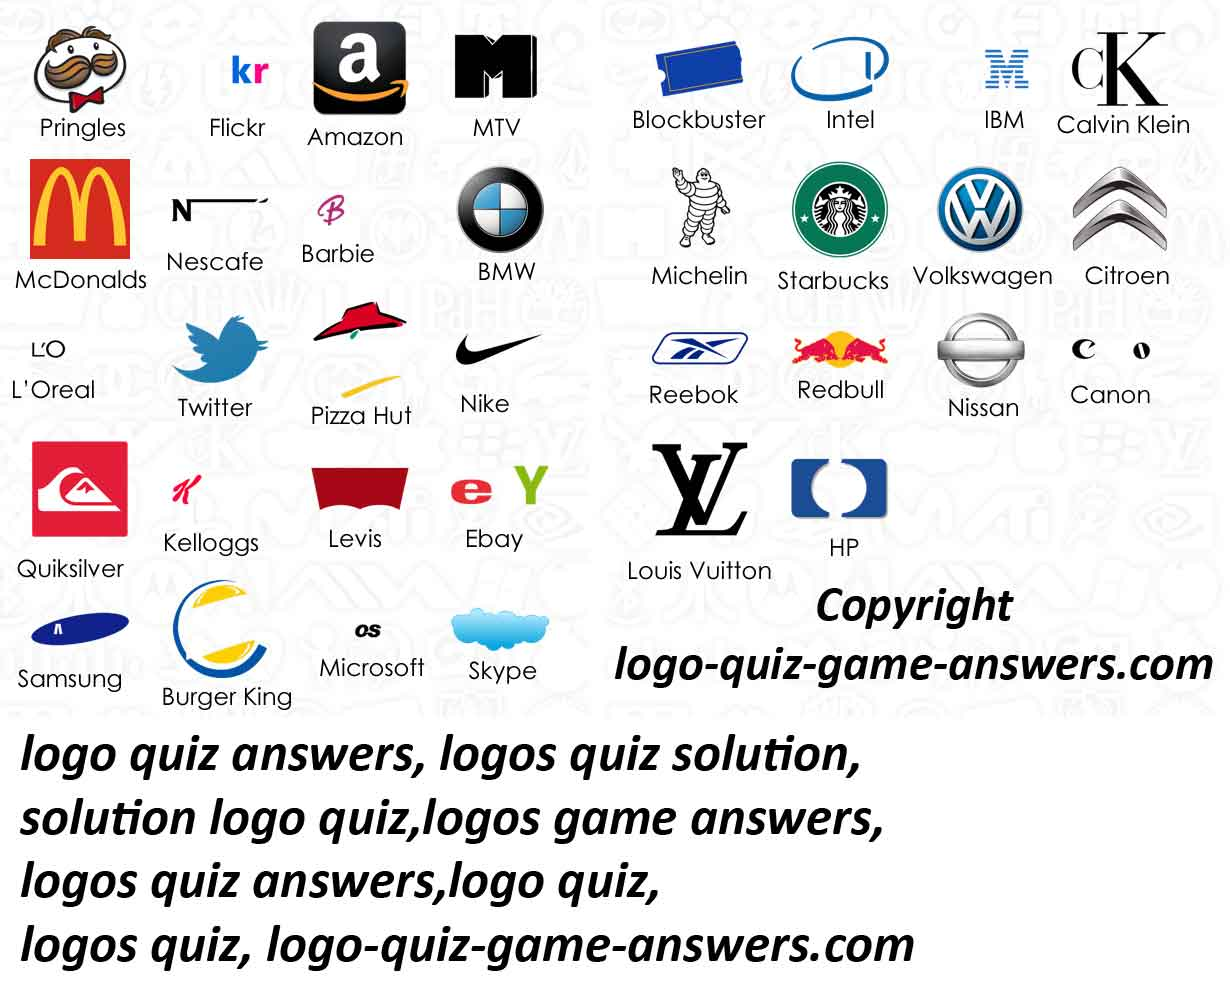 M Logo Quiz All Logos 88: Logos Qu...